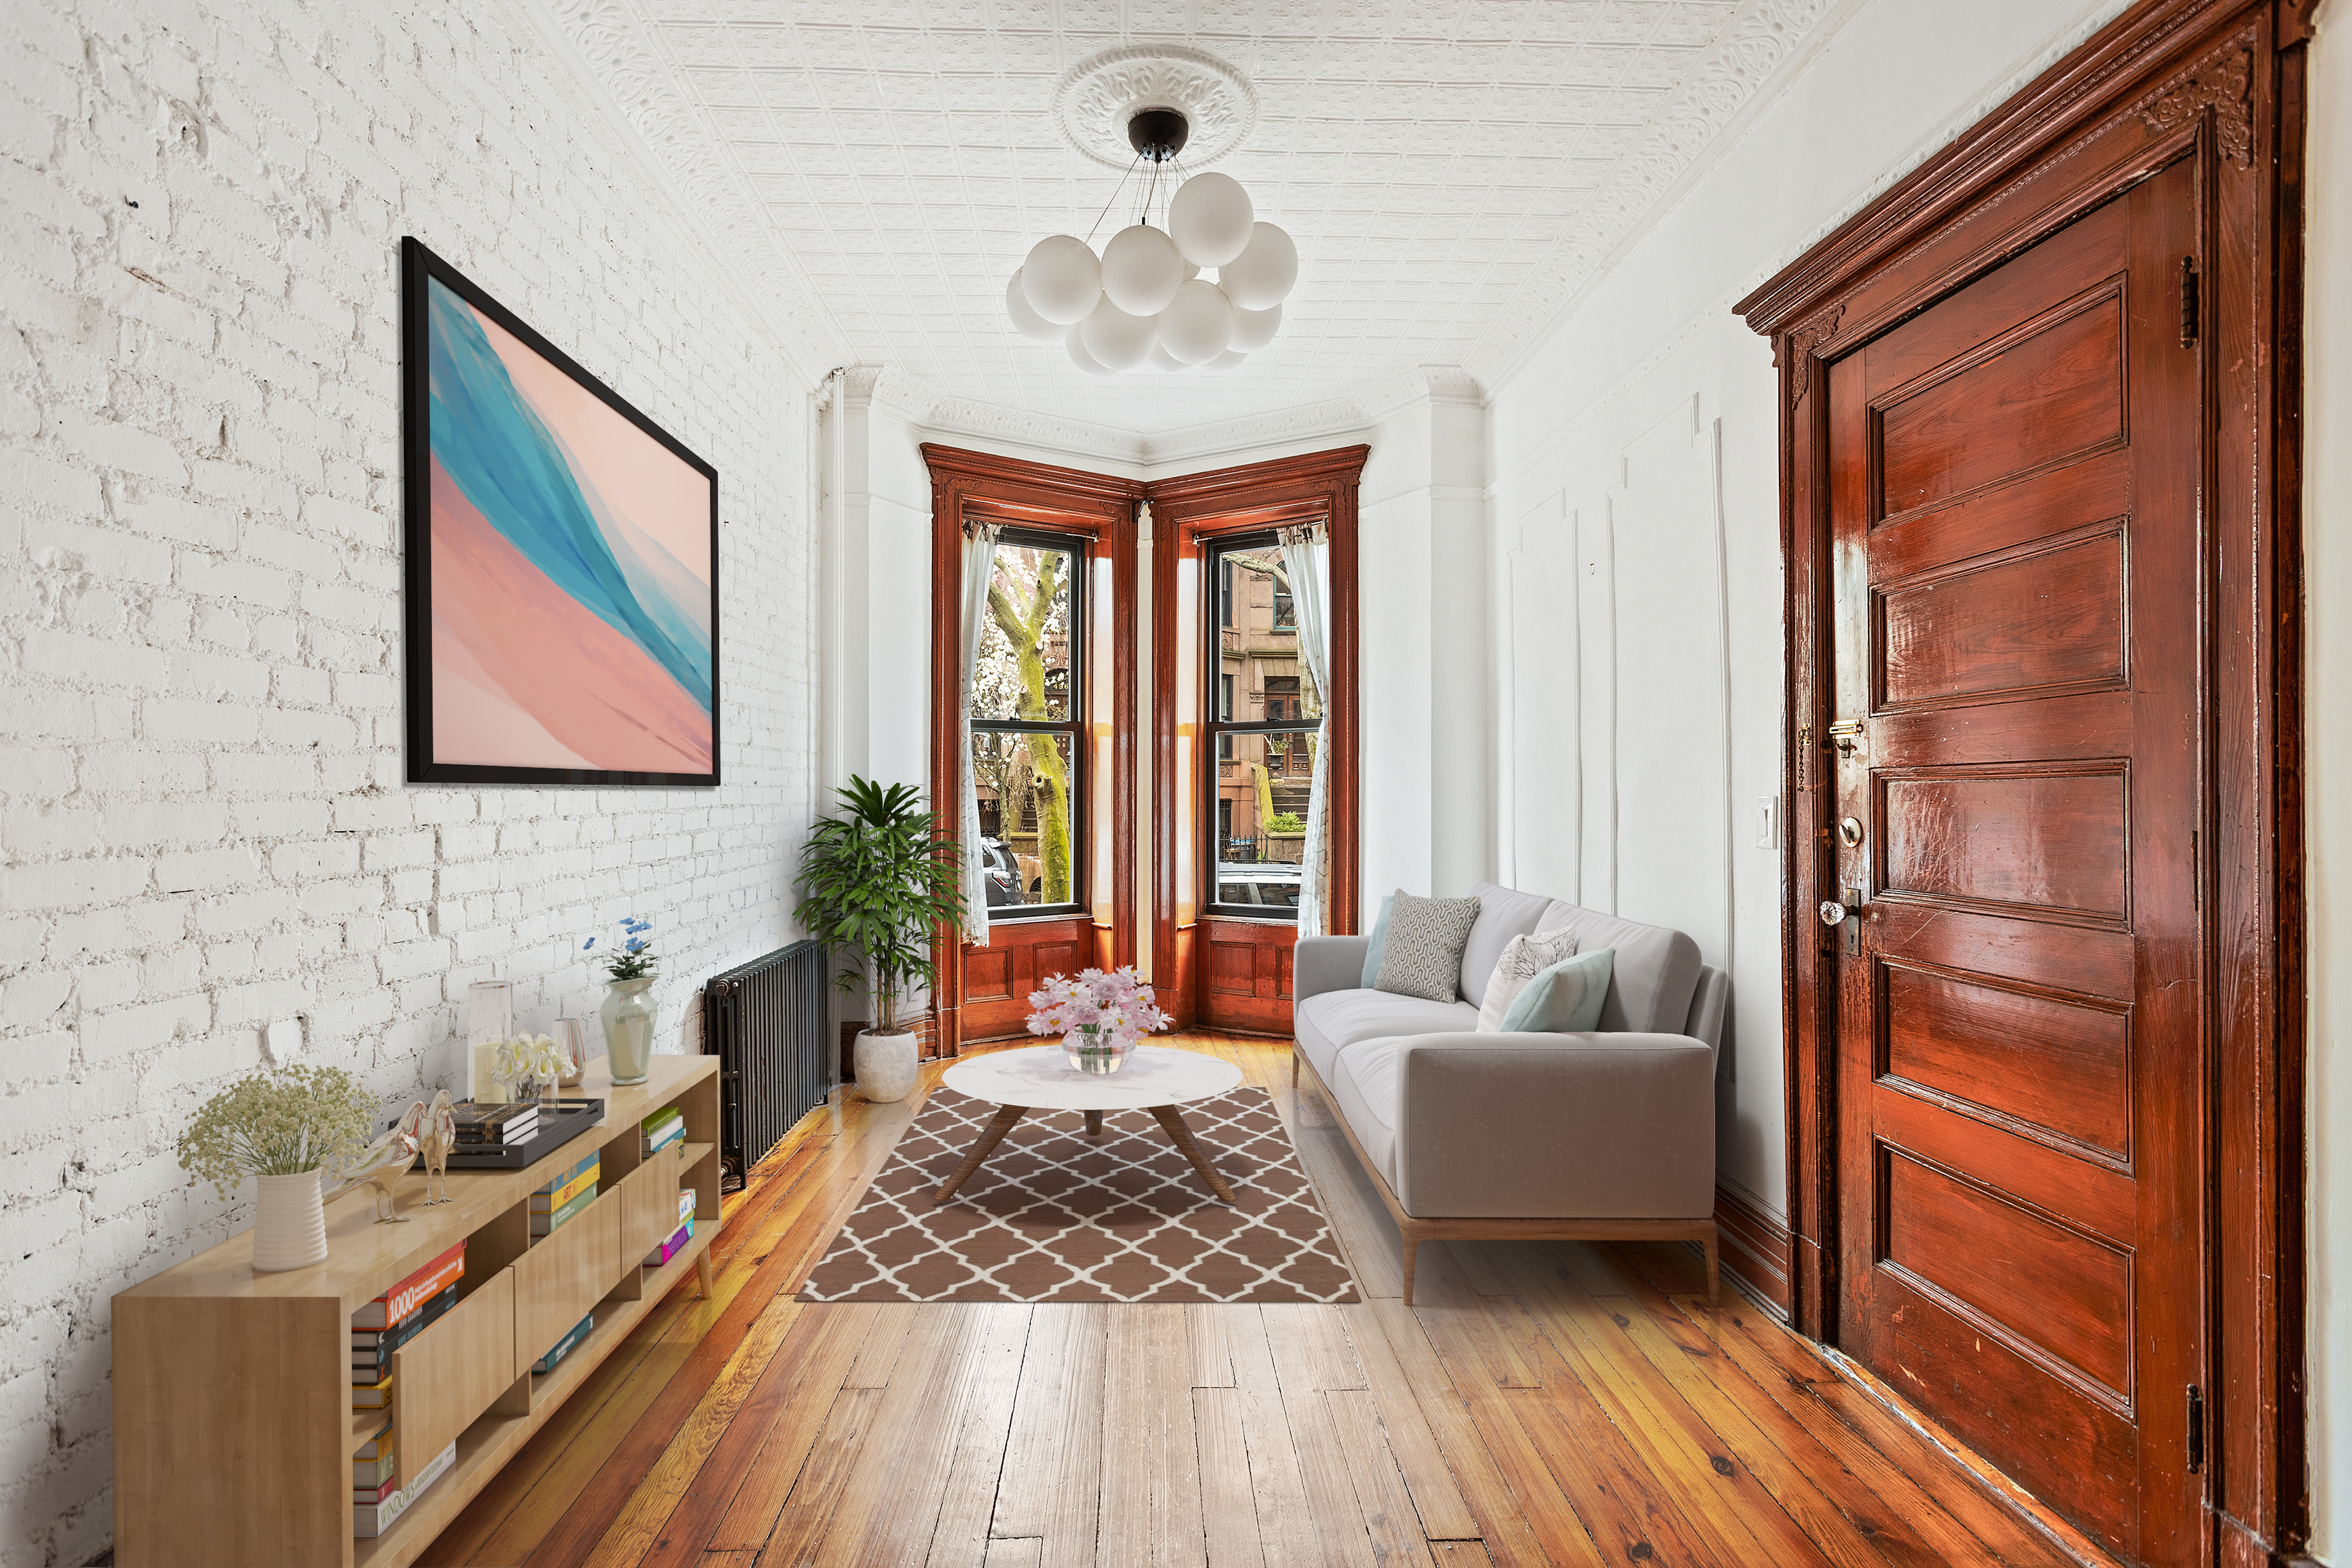 A living area with white exposed brick, hardwood floors, and bay windows.